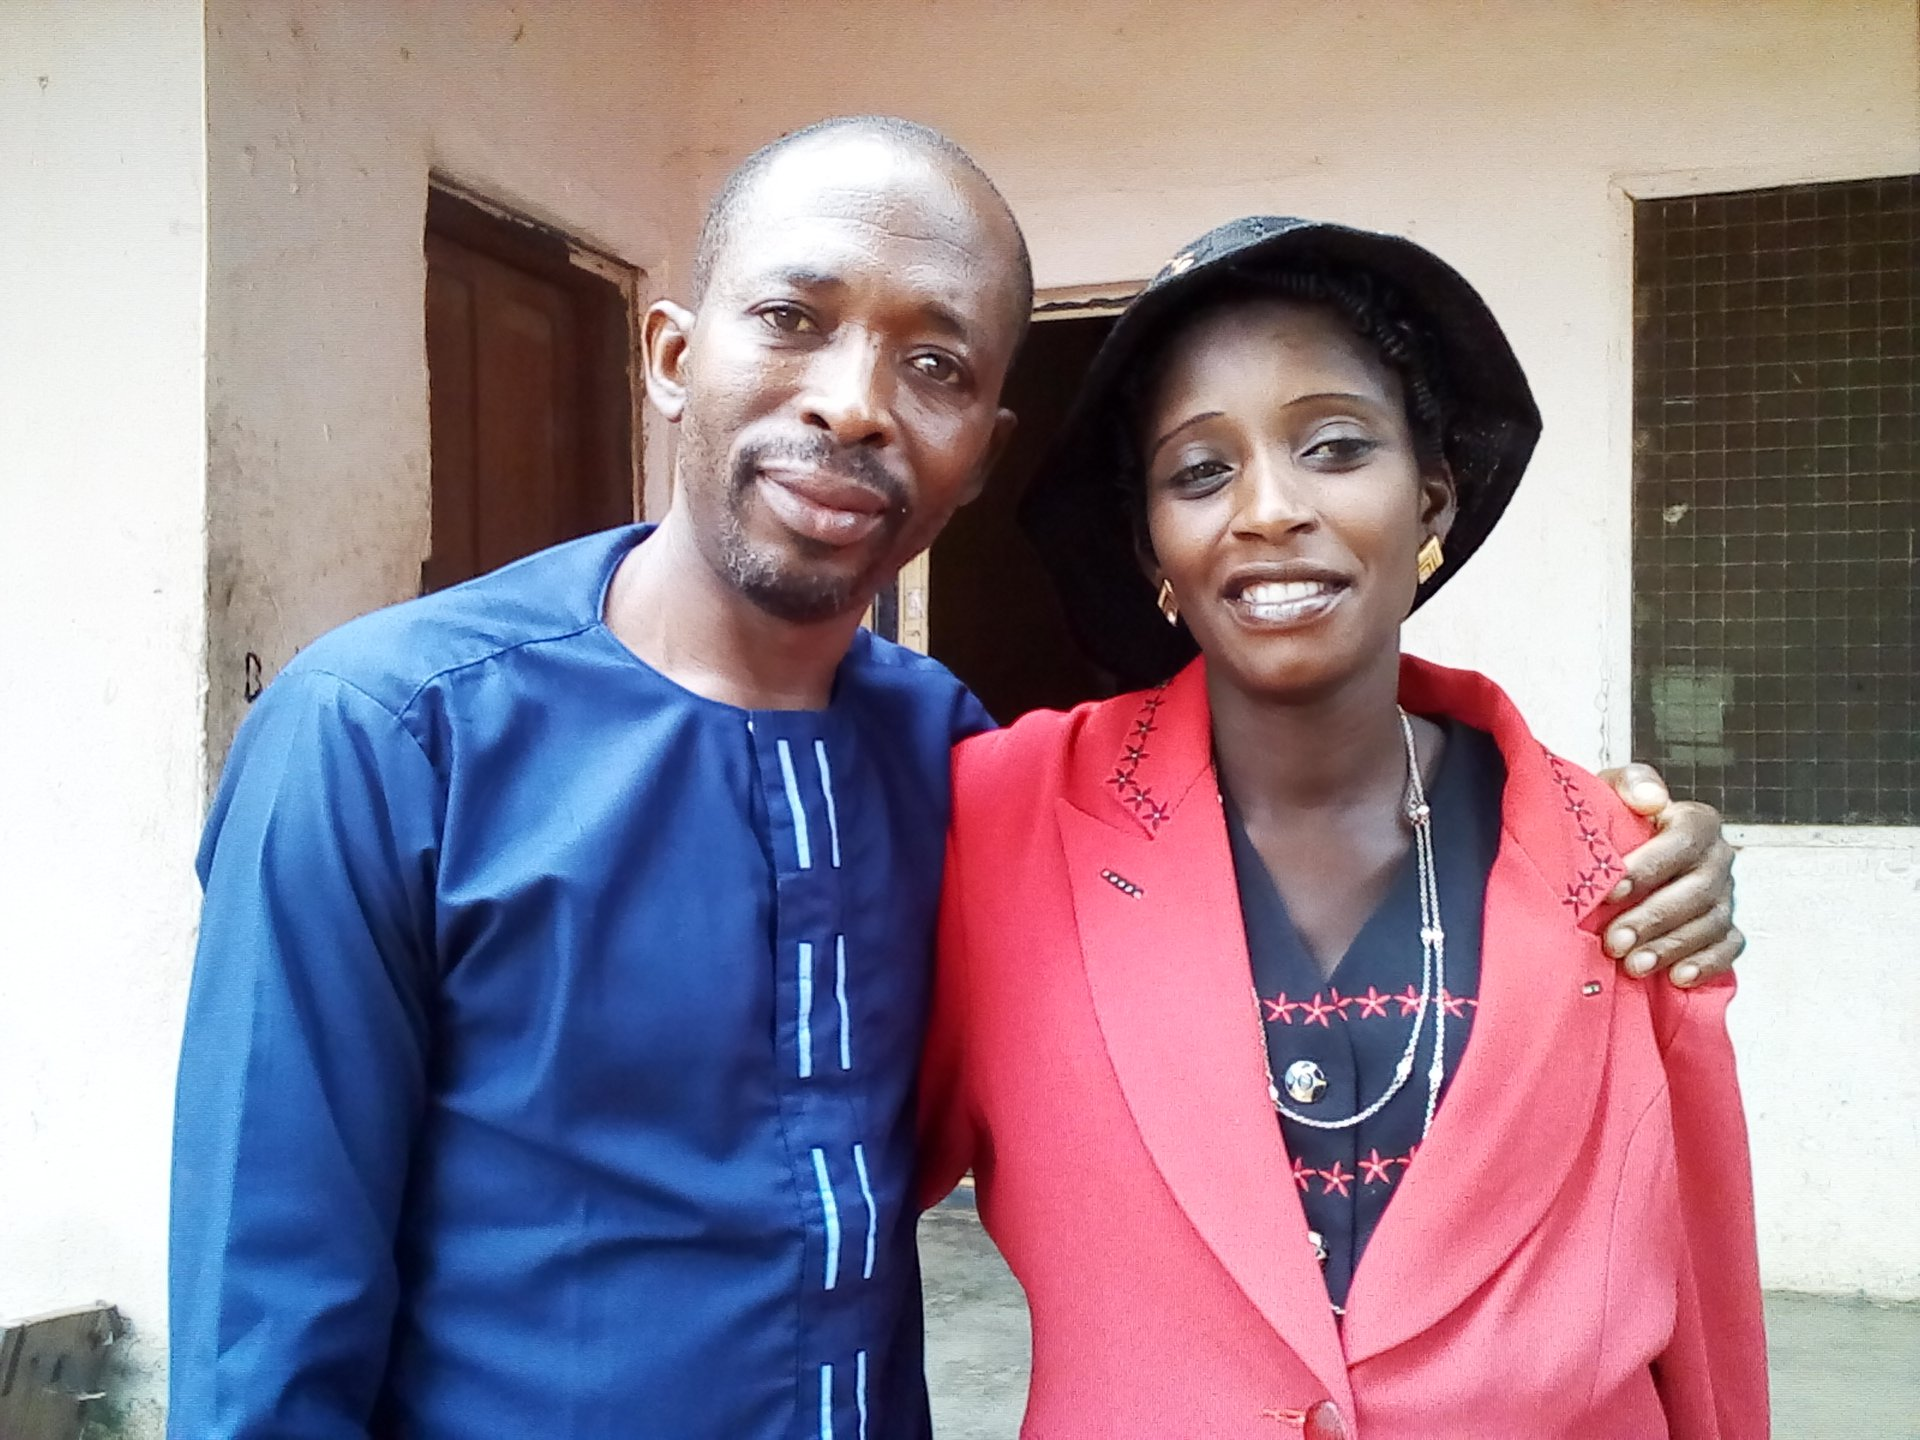 Nigerian Pastor and his Pregnant Wife Shot to Death While Working on Family Farm Just Days After Sending their 8 Children to a Safe Haven